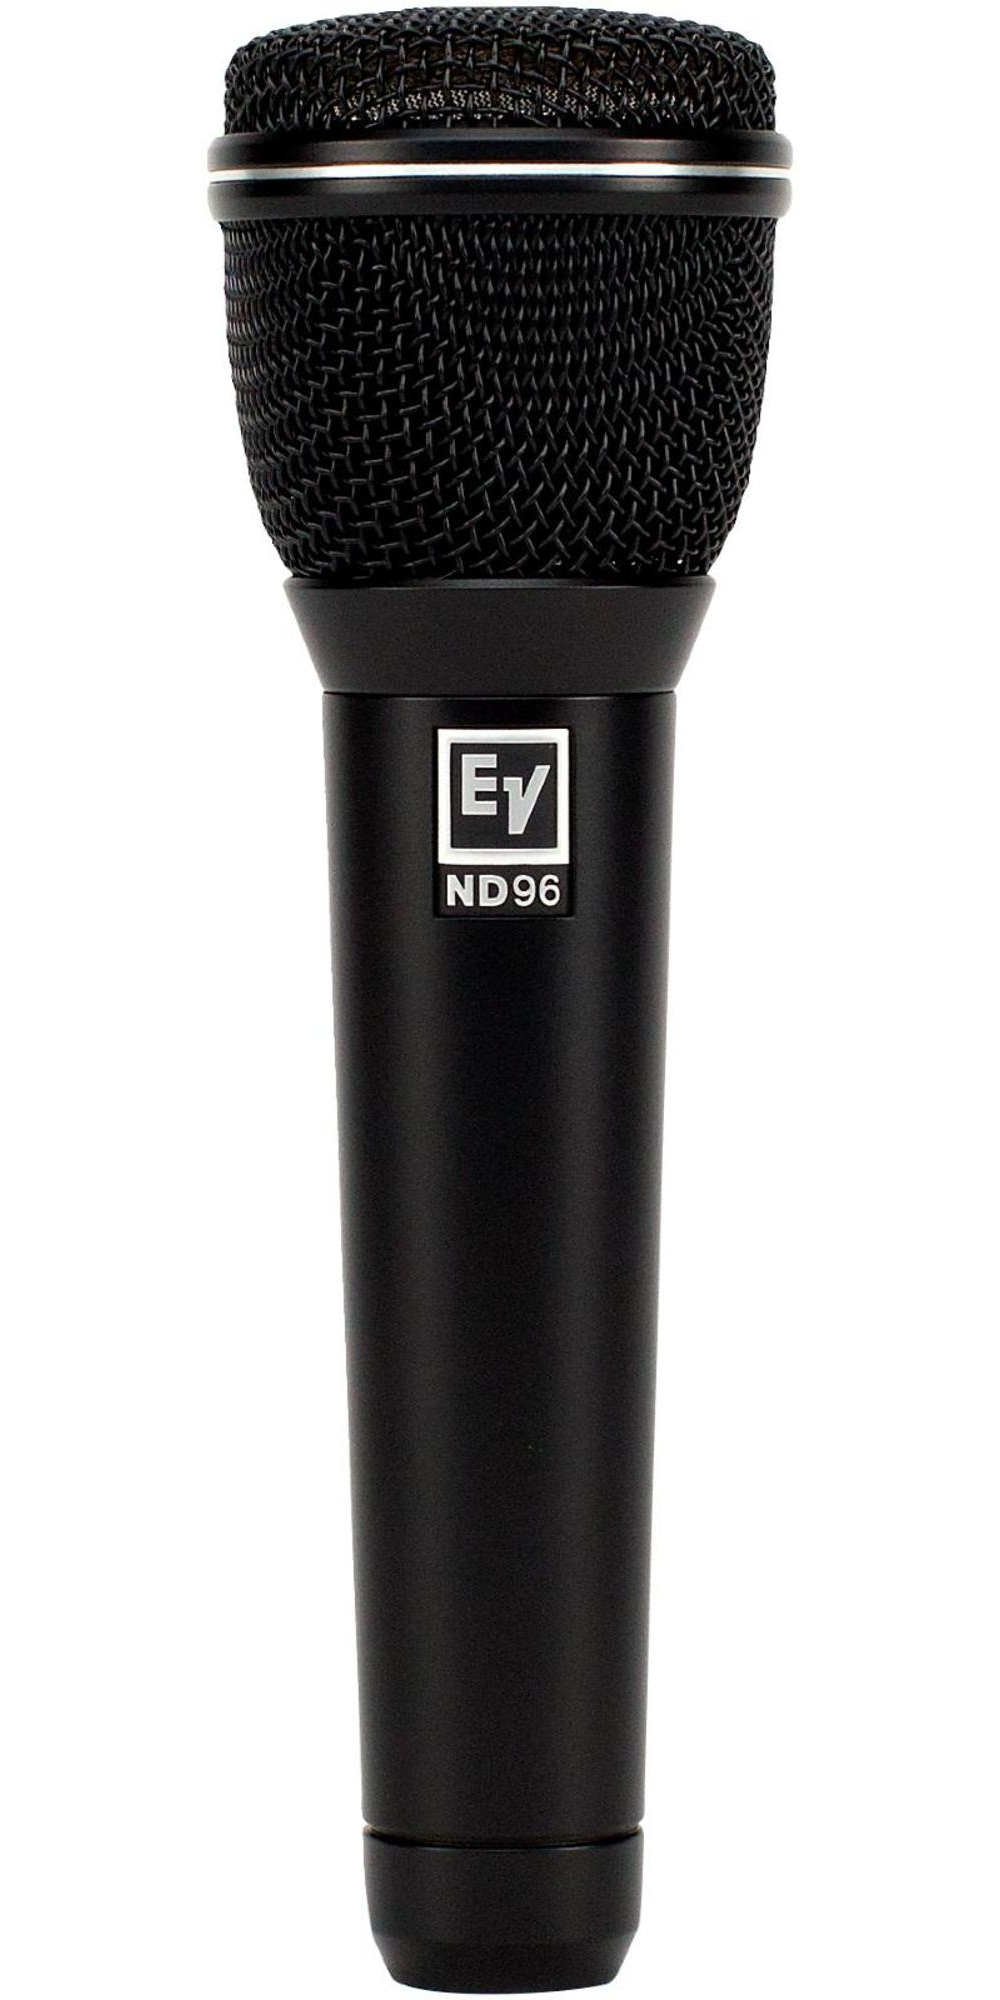 ND96 Dynamic Supercardioid Vocal Microphone by Electro-Voice